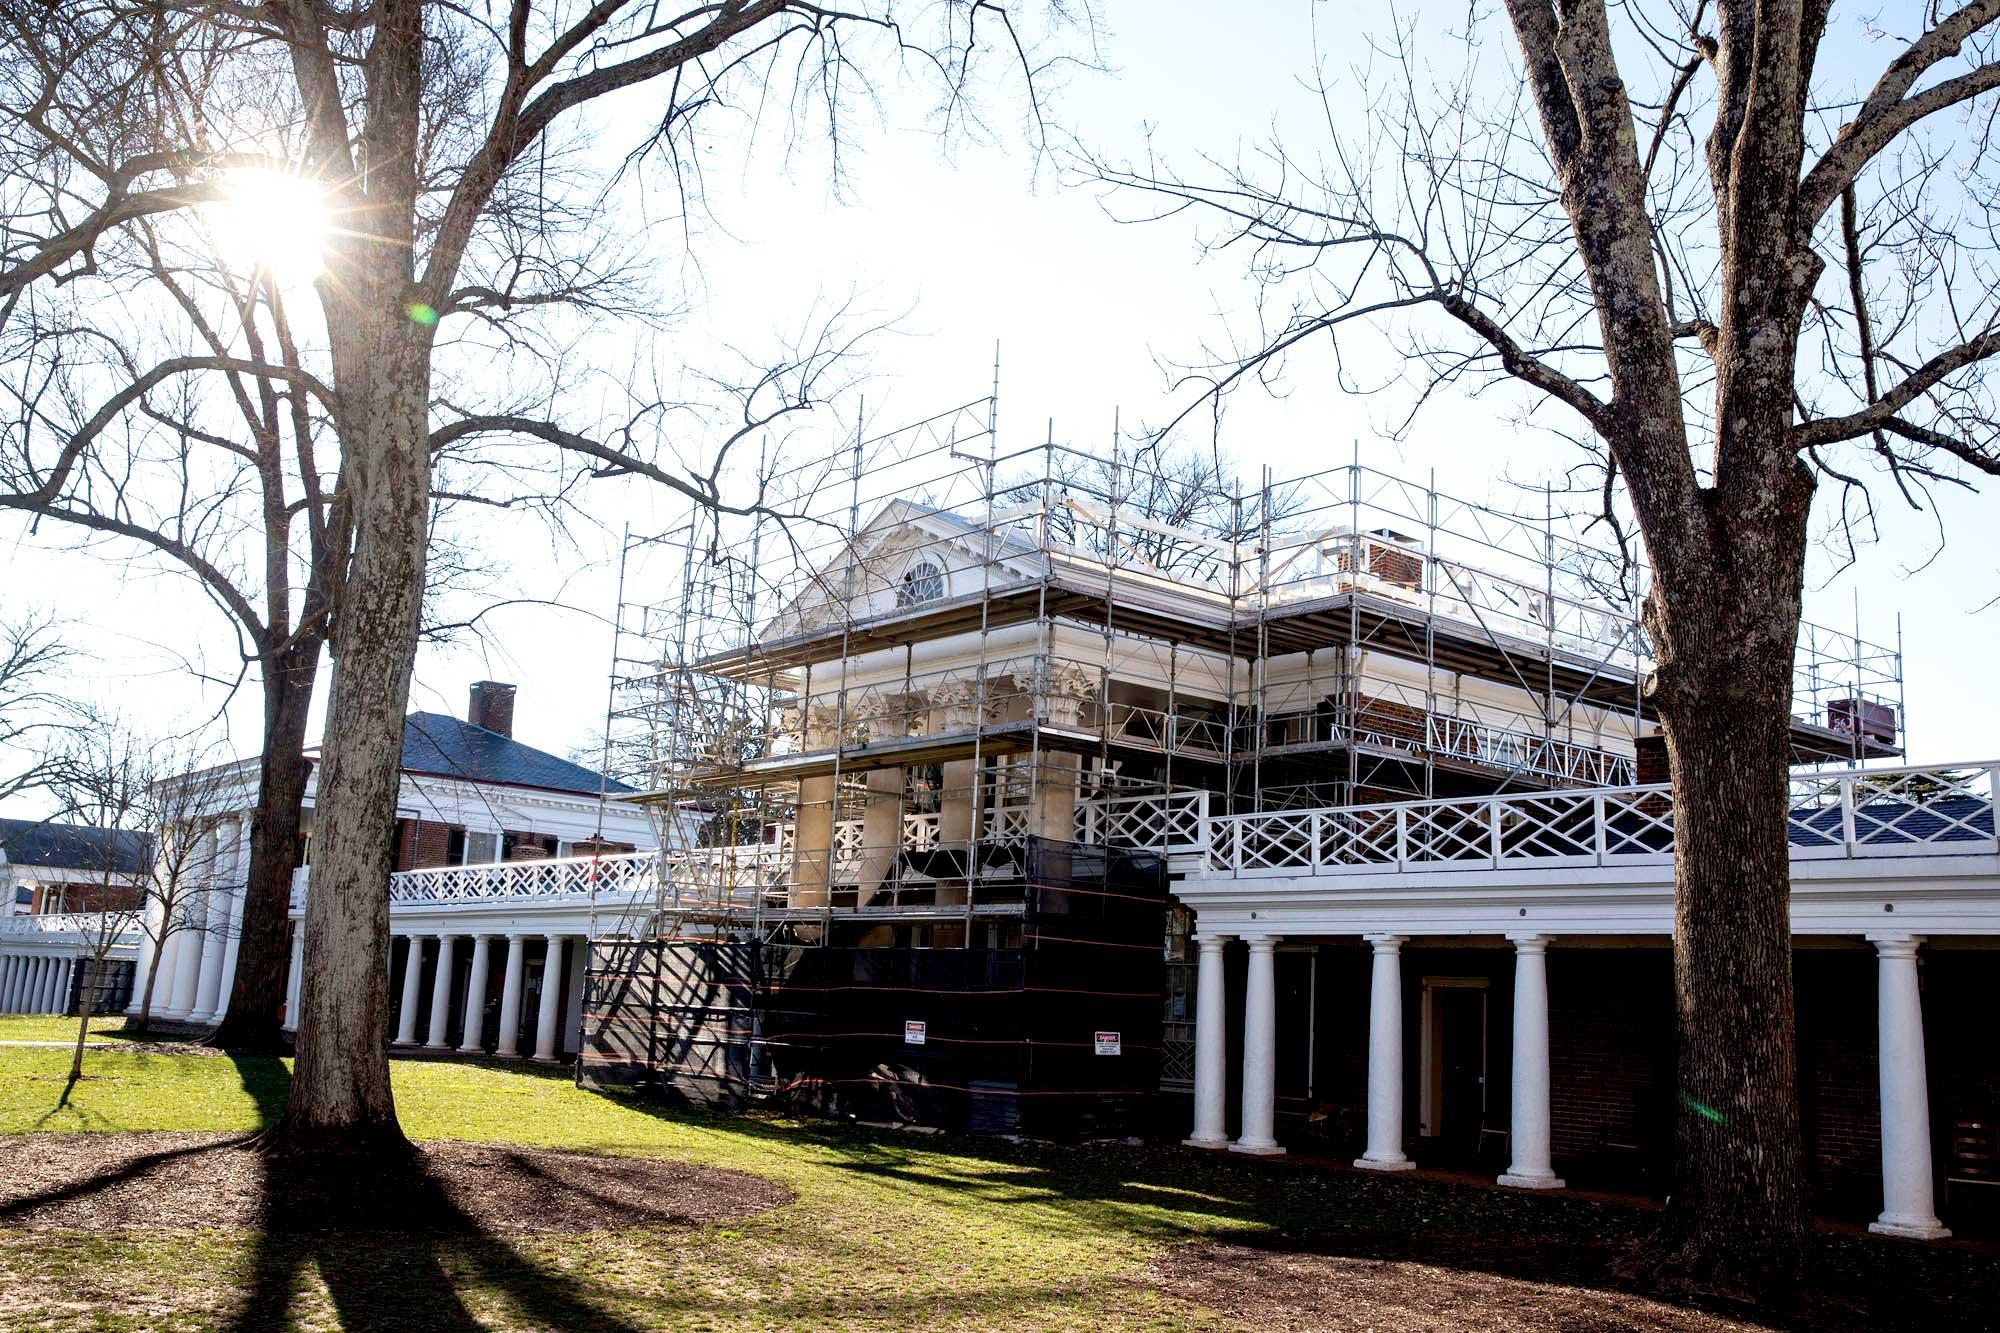 Pavilion III has never had a major addition, but it did have a subtraction: a balustrade along the roof that is now being restored.